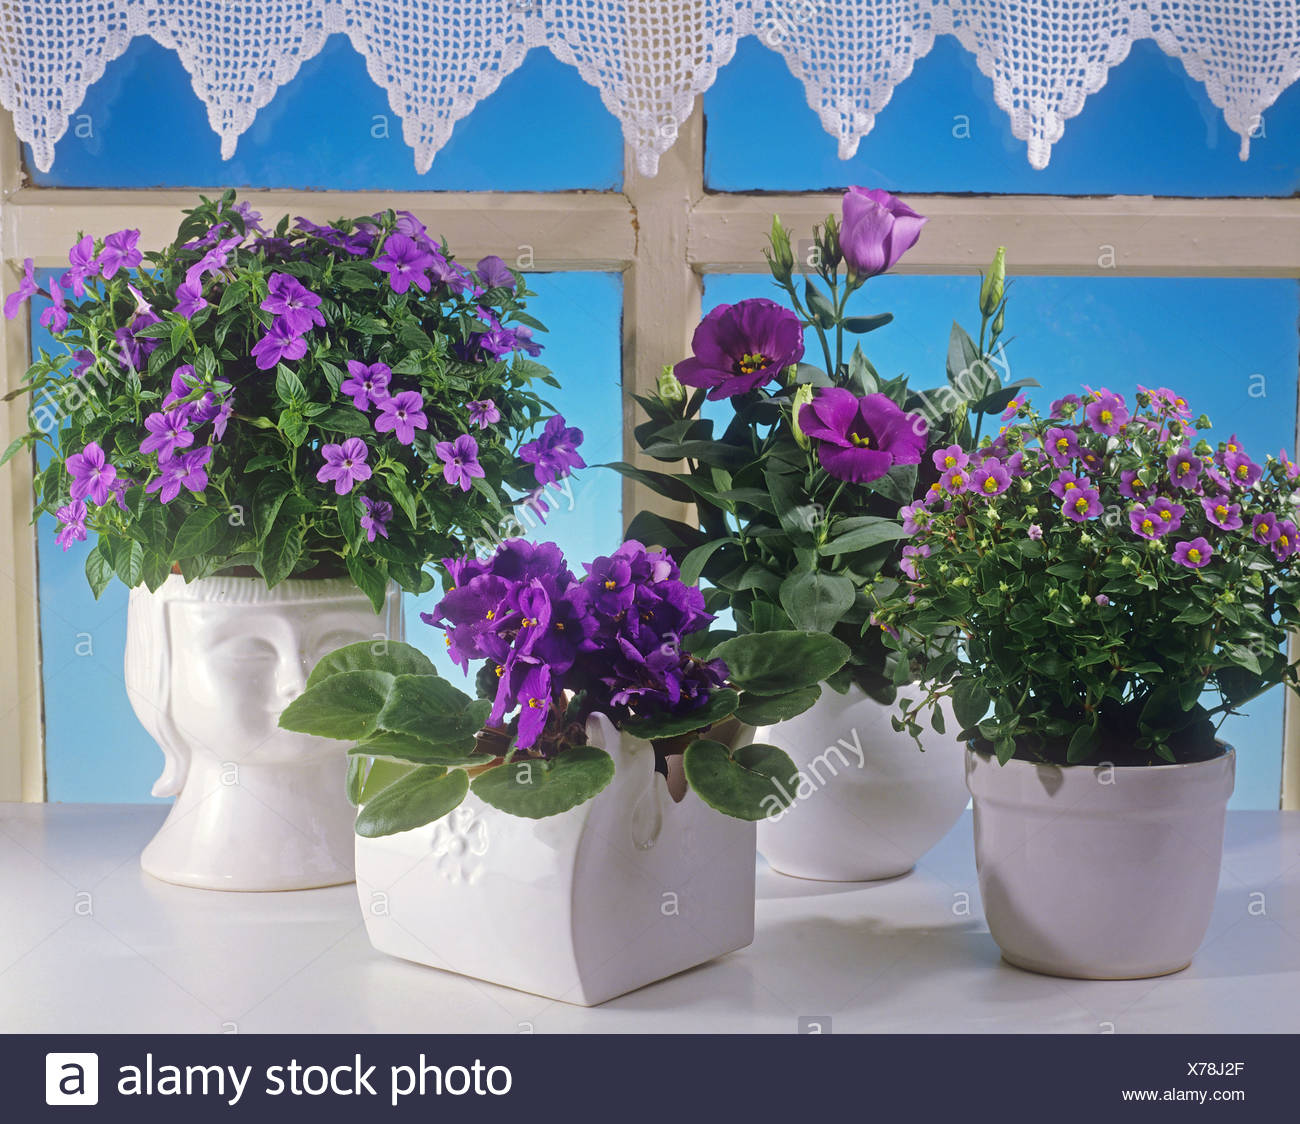 different lilac flowers in pots - Stock Image